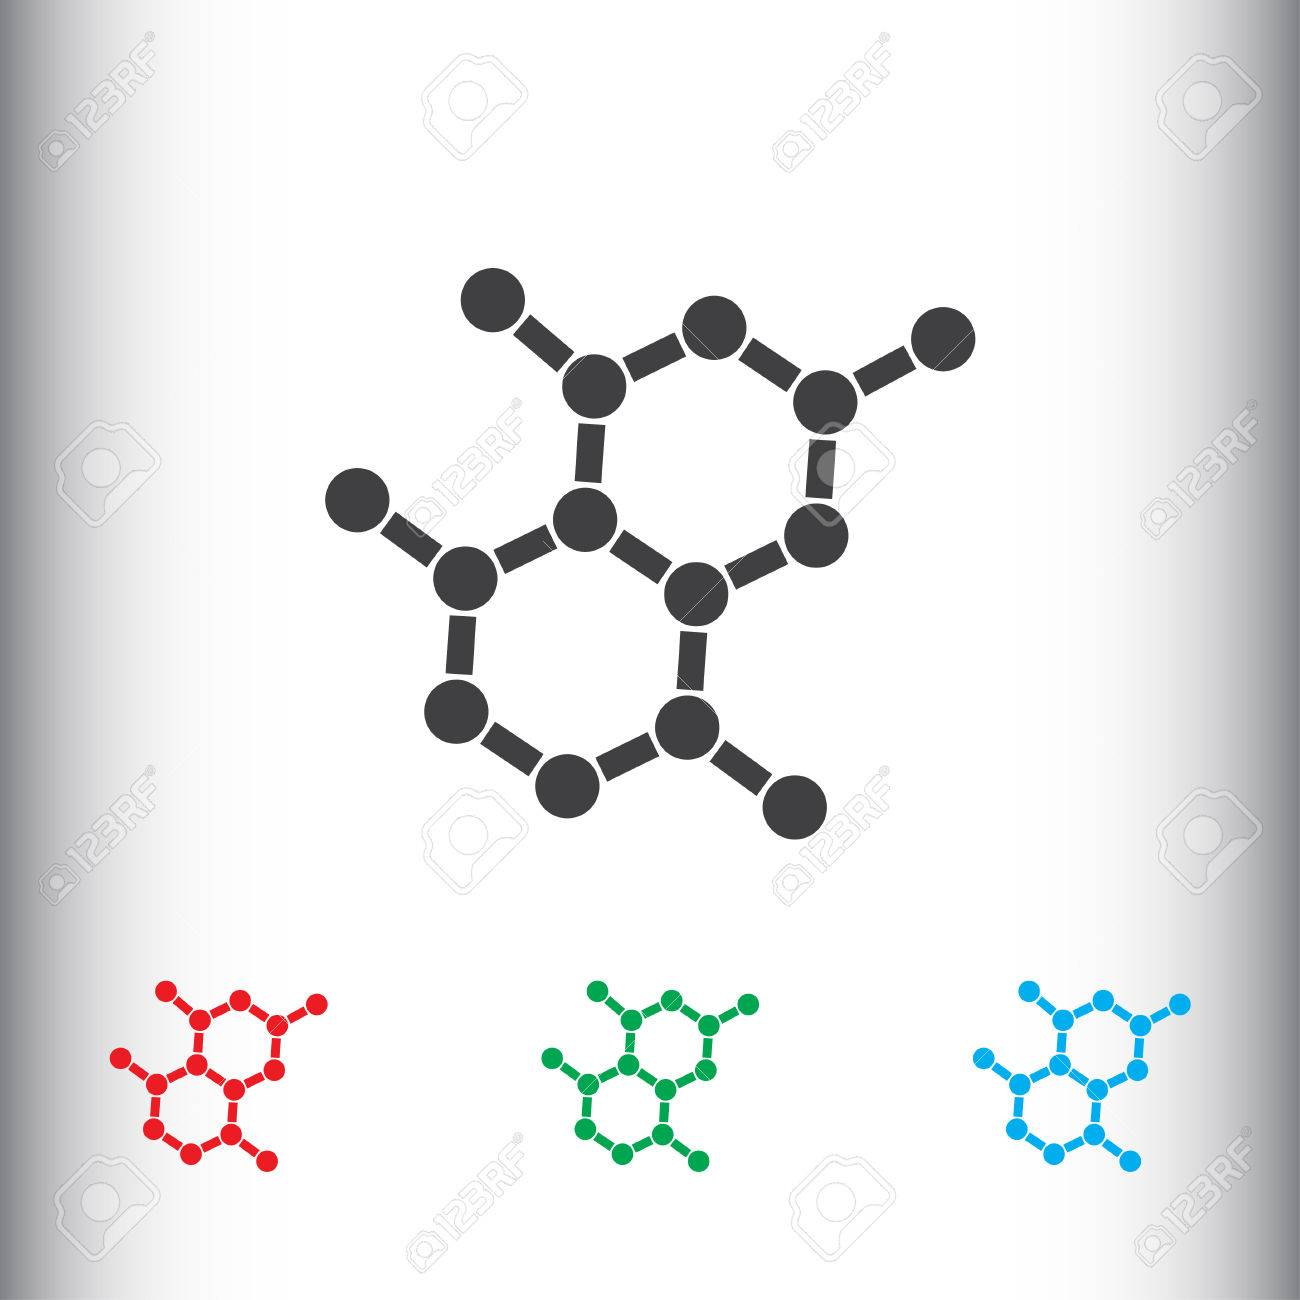 Chemical symbol f images symbol and sign ideas chemical formula sign icon vector illustration chemical formula chemical formula sign icon vector illustration chemical formula buycottarizona